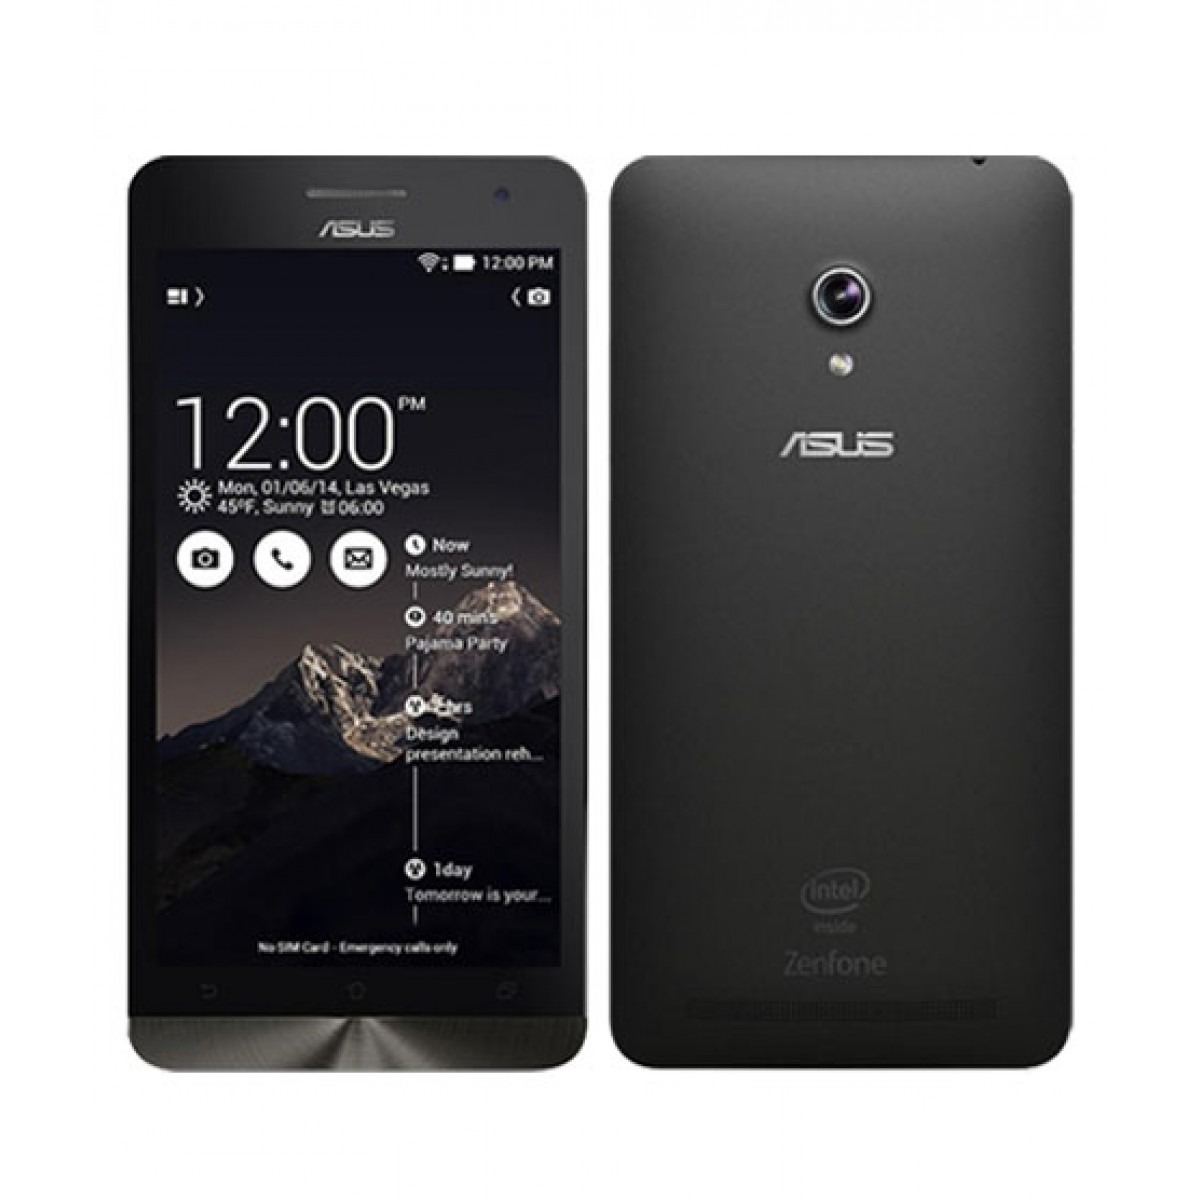 Root and Install TWRP Recovery on Asus Zenfone 6, How to Root Asus Zenfone 6, Install TWRP Recovery on Asus Zenfone 6, Root Asus Zenfone 6 Using supersu